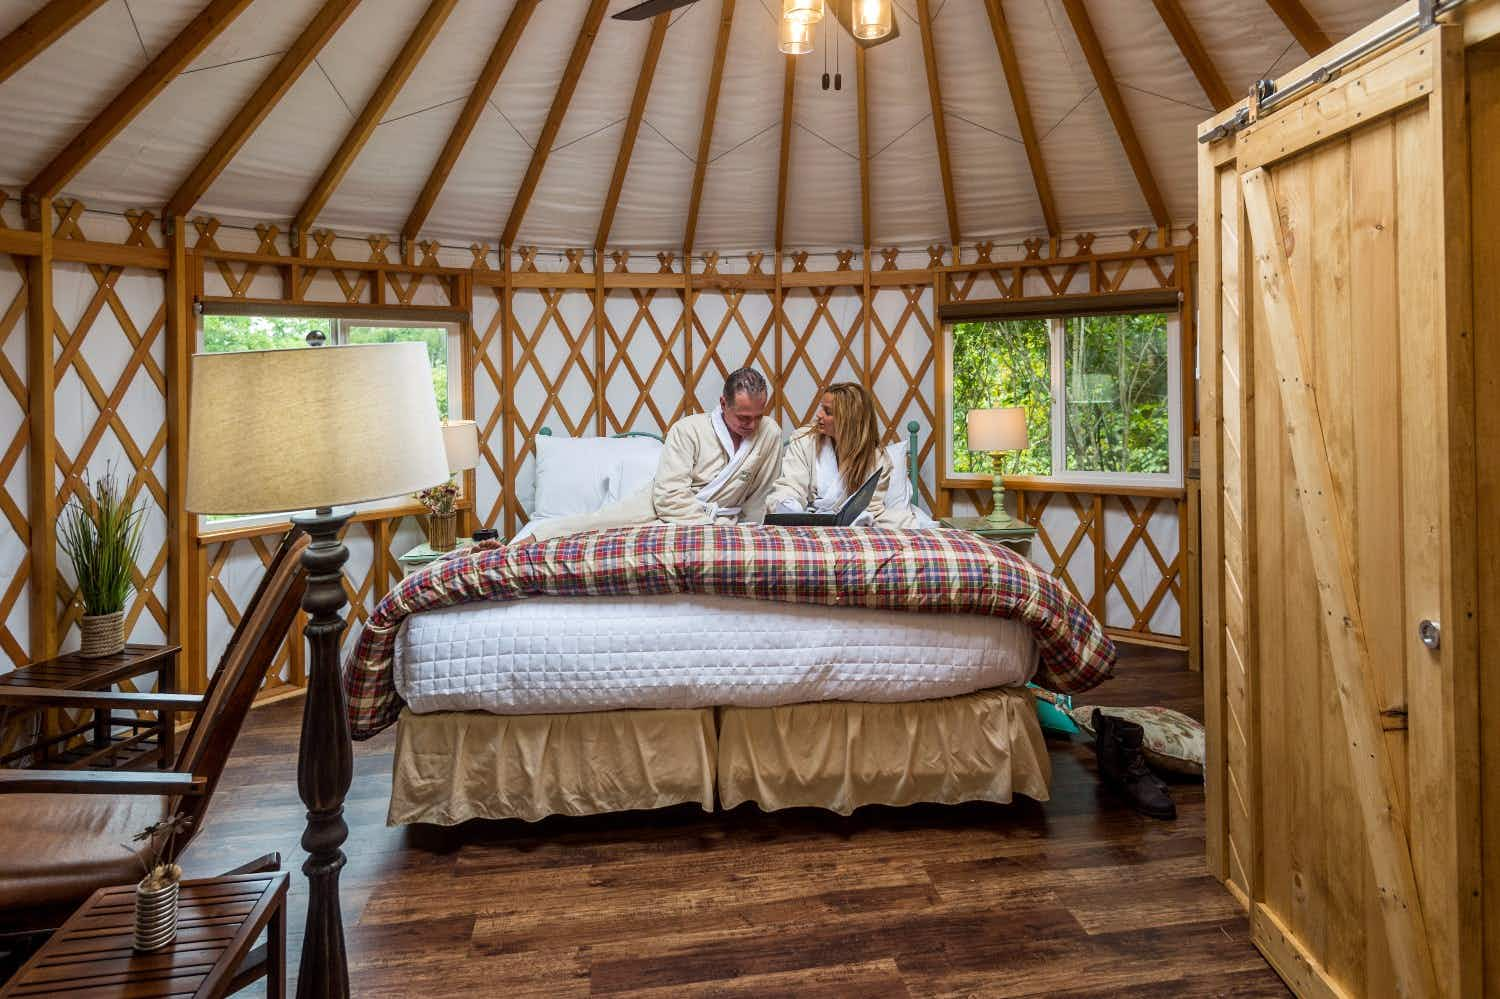 You can now sleep beneath the stars in a luxury yurt in Ohio